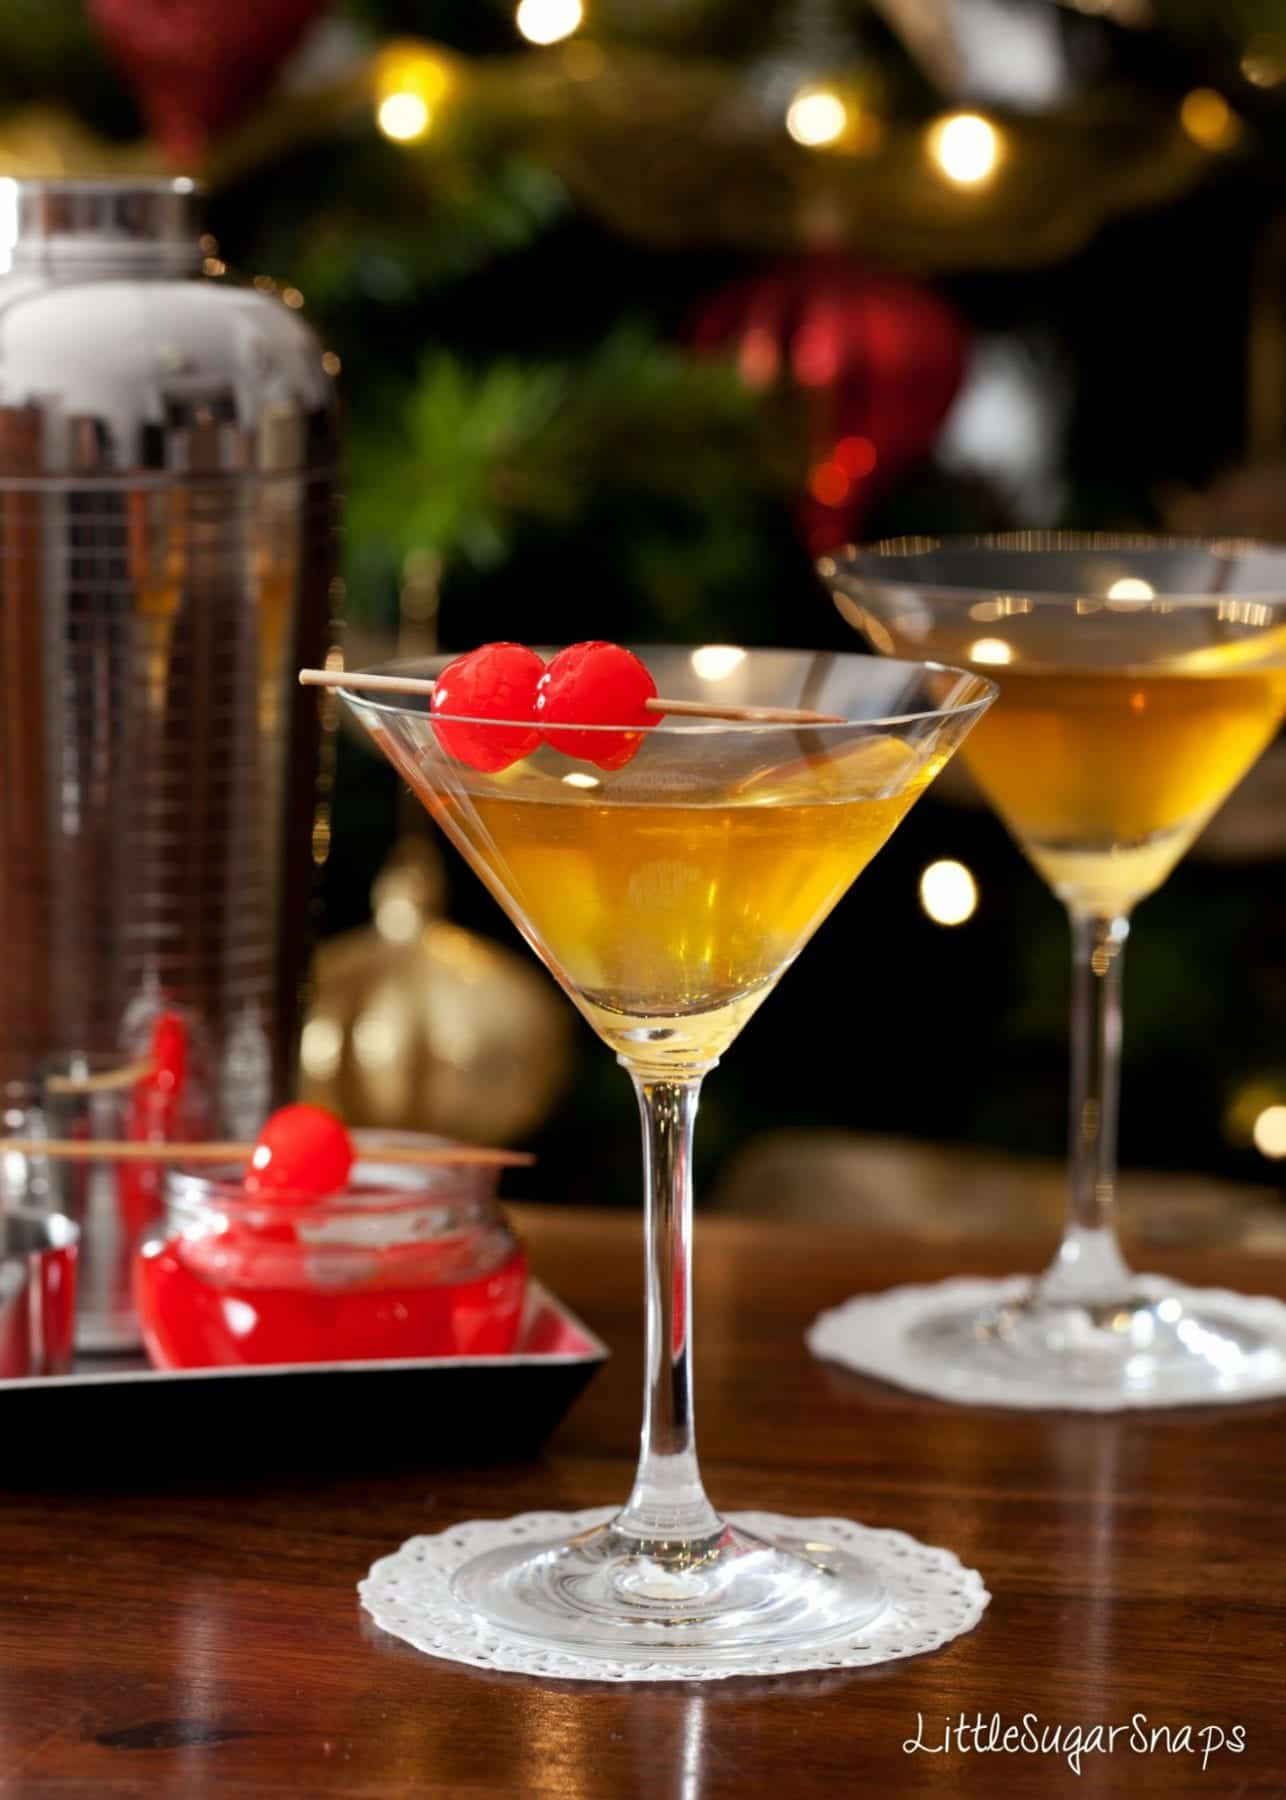 Cocktails served with Maraschino cherries in front of a Christmas tree